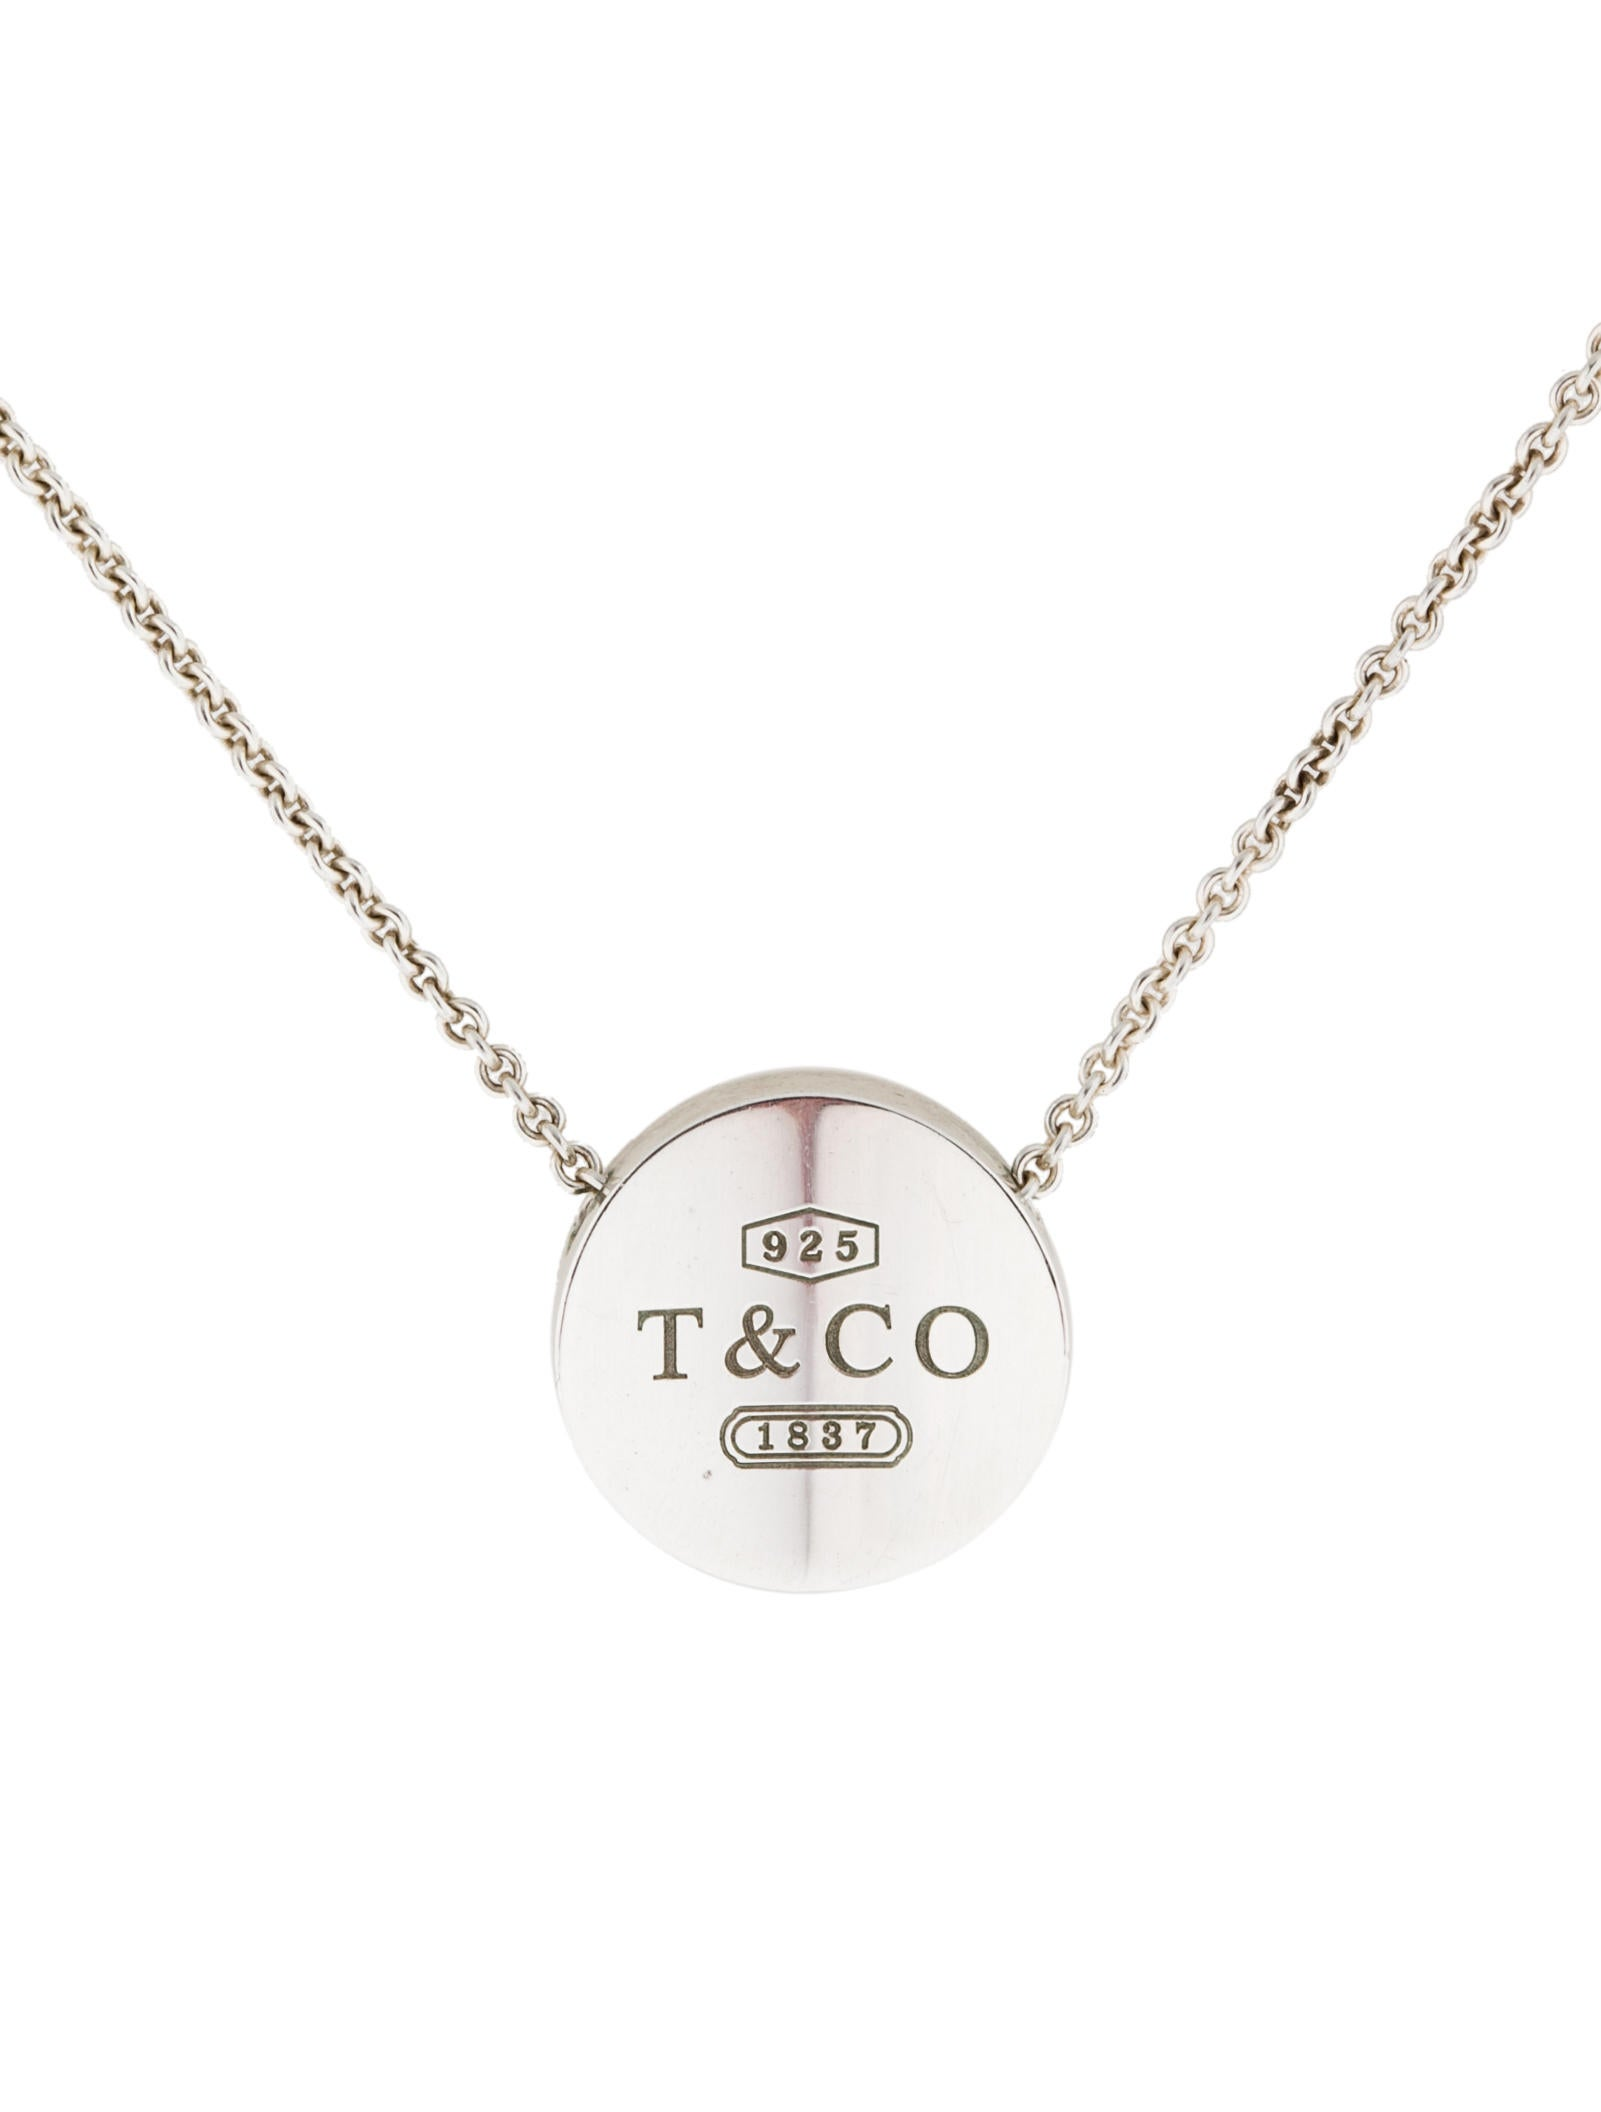 Tiffany co 1837 concave circle pendant necklace necklaces 1837 concave circle pendant necklace mozeypictures Gallery